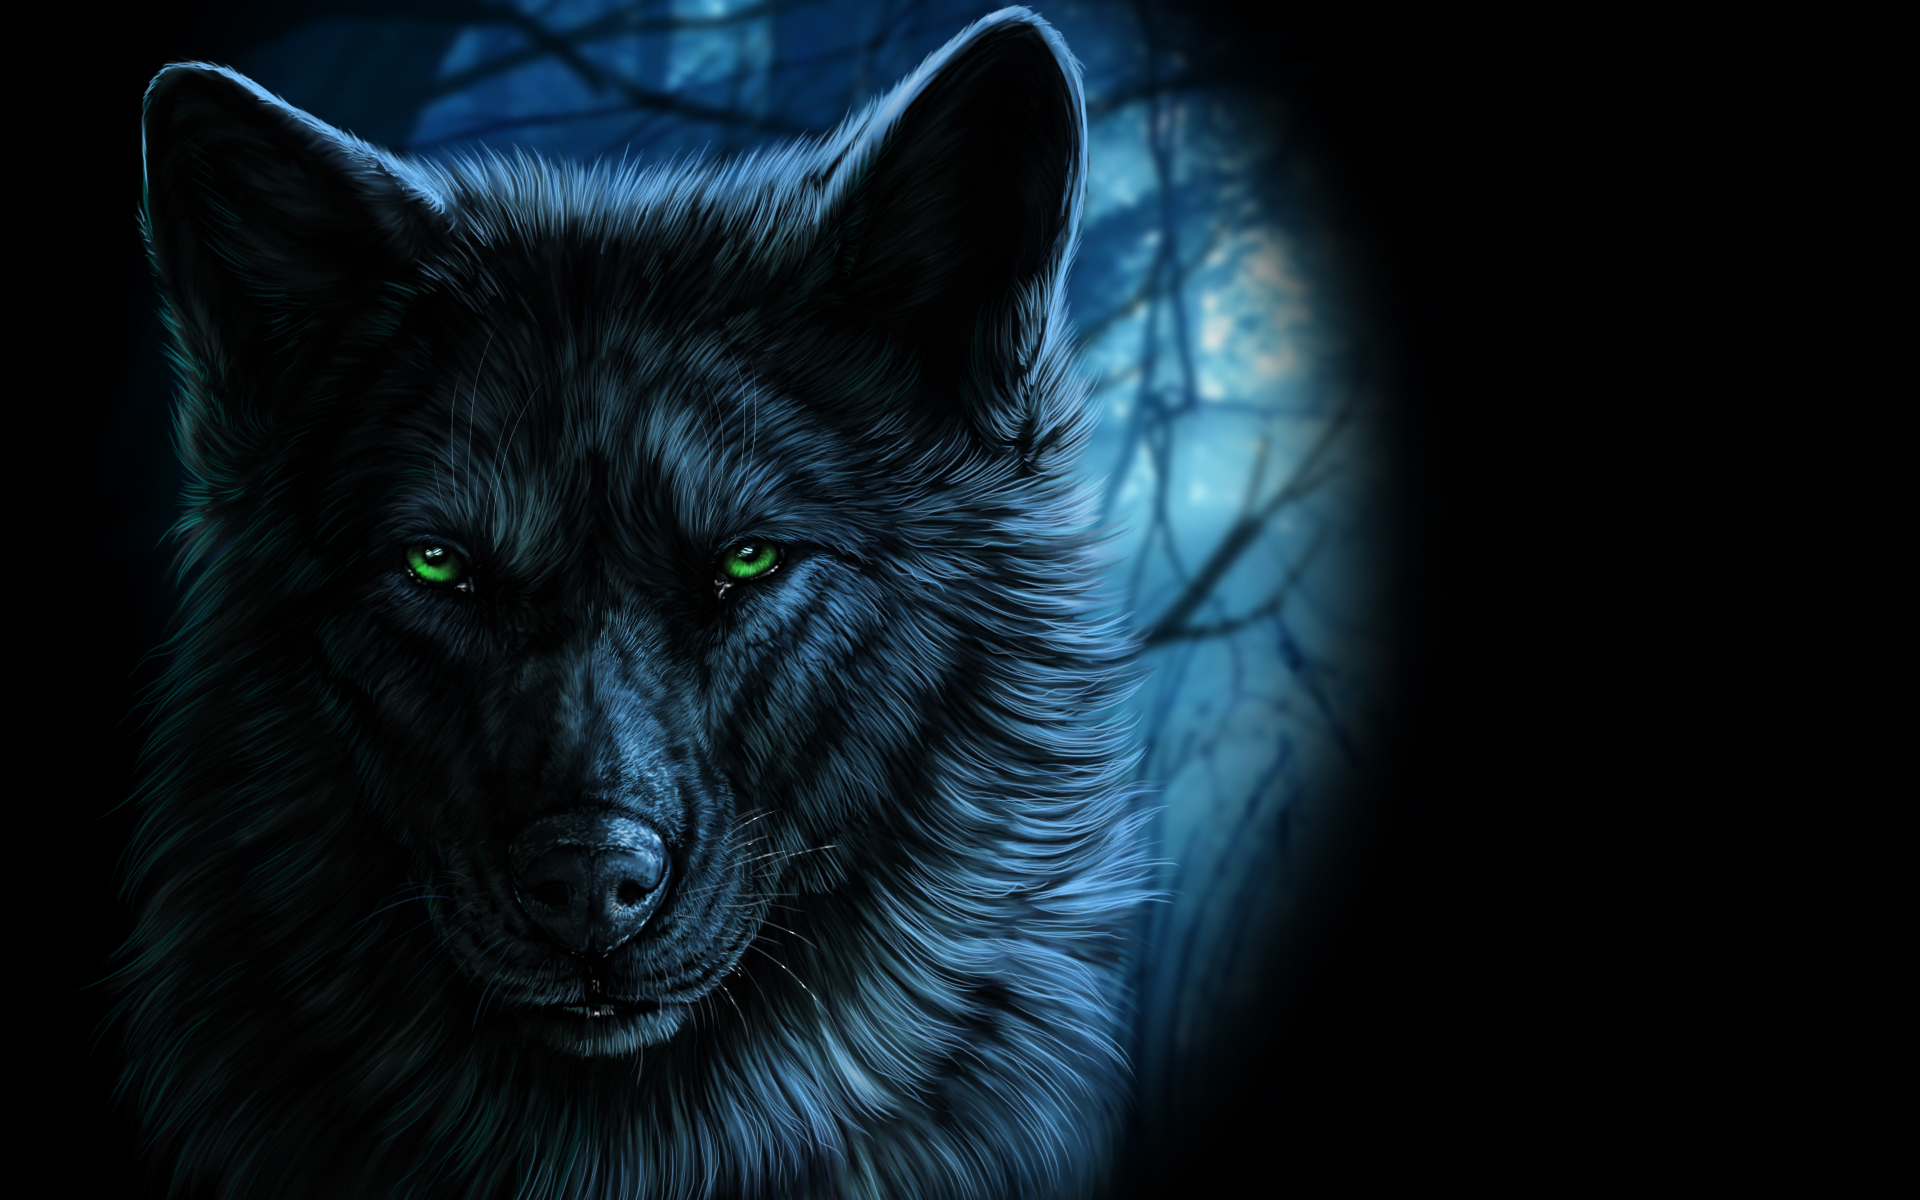 4k Wallpaper Wolf Posted By Michelle Sellers